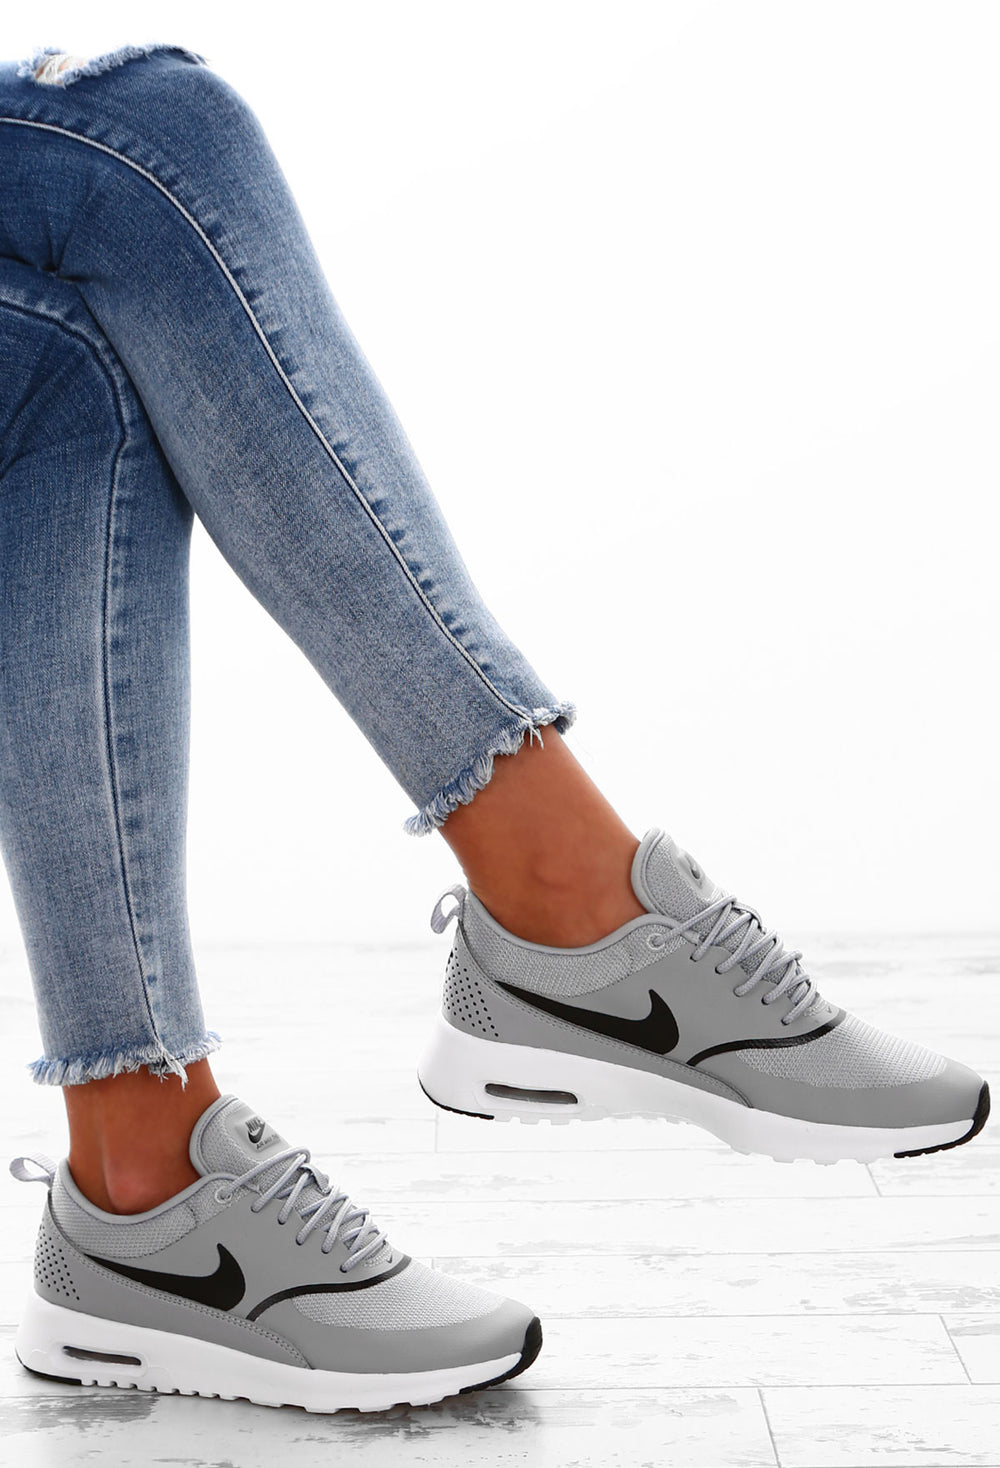 Nike Air Max Thea Grey Trainers – Pink